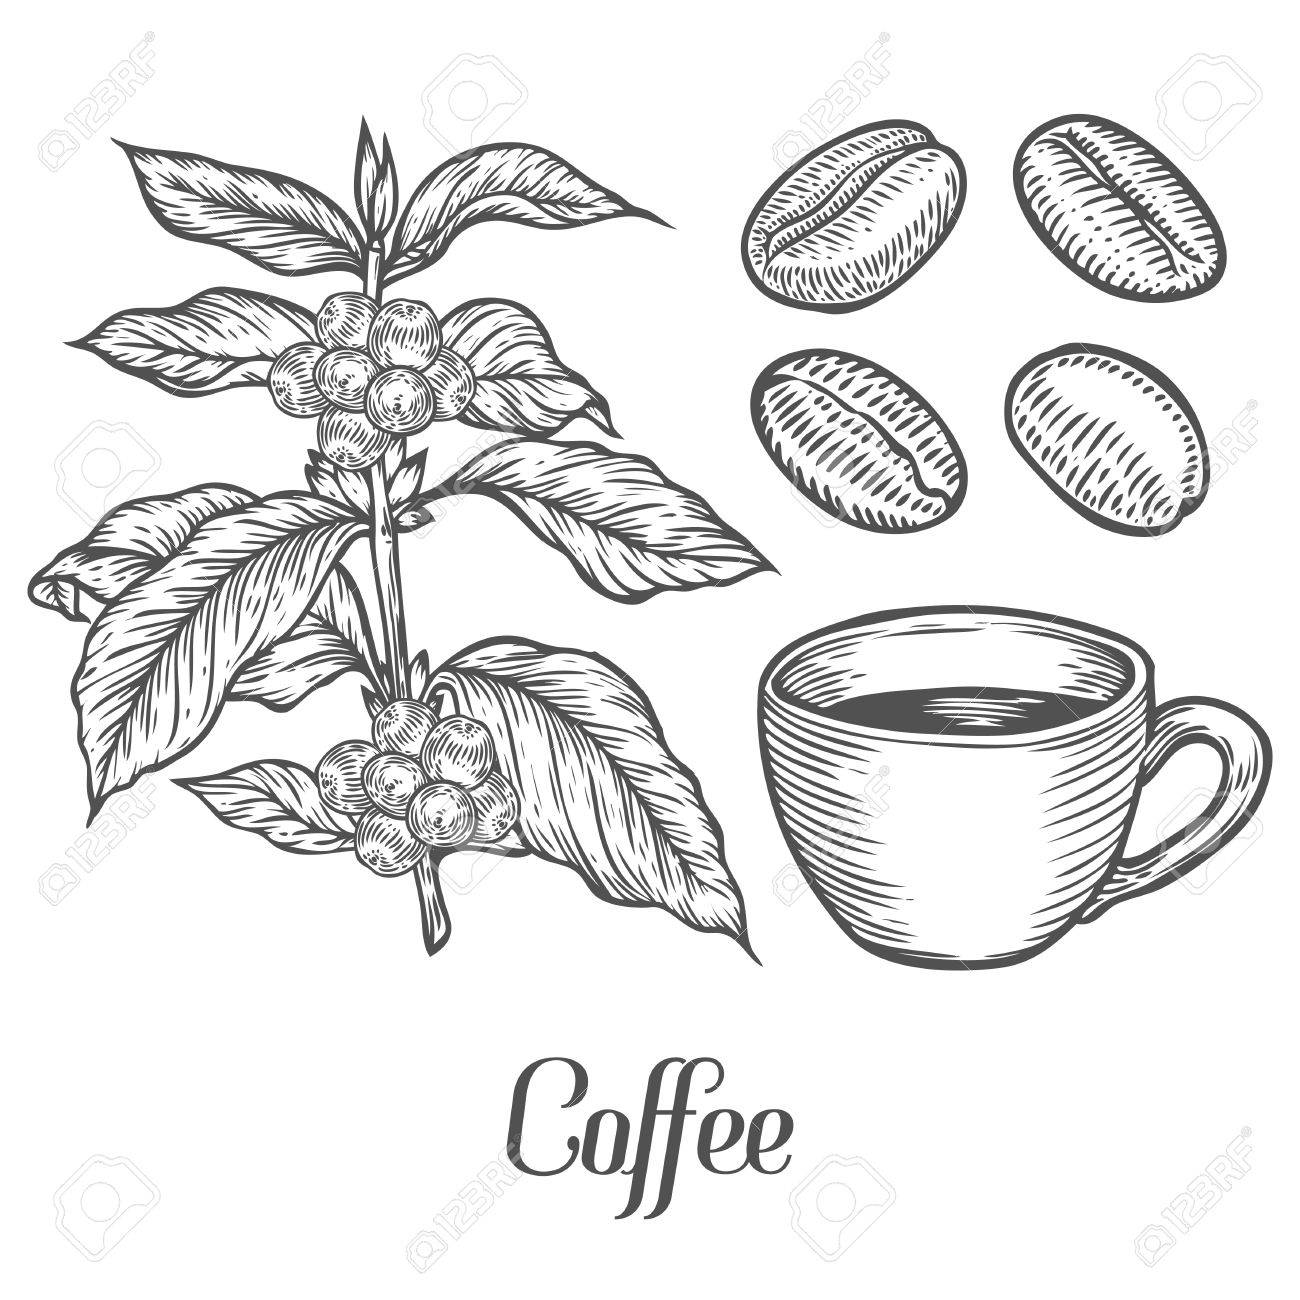 1300x1300 Coffee Plant Branch With Leaf, Berry, Coffee Bean, Cup, Seed